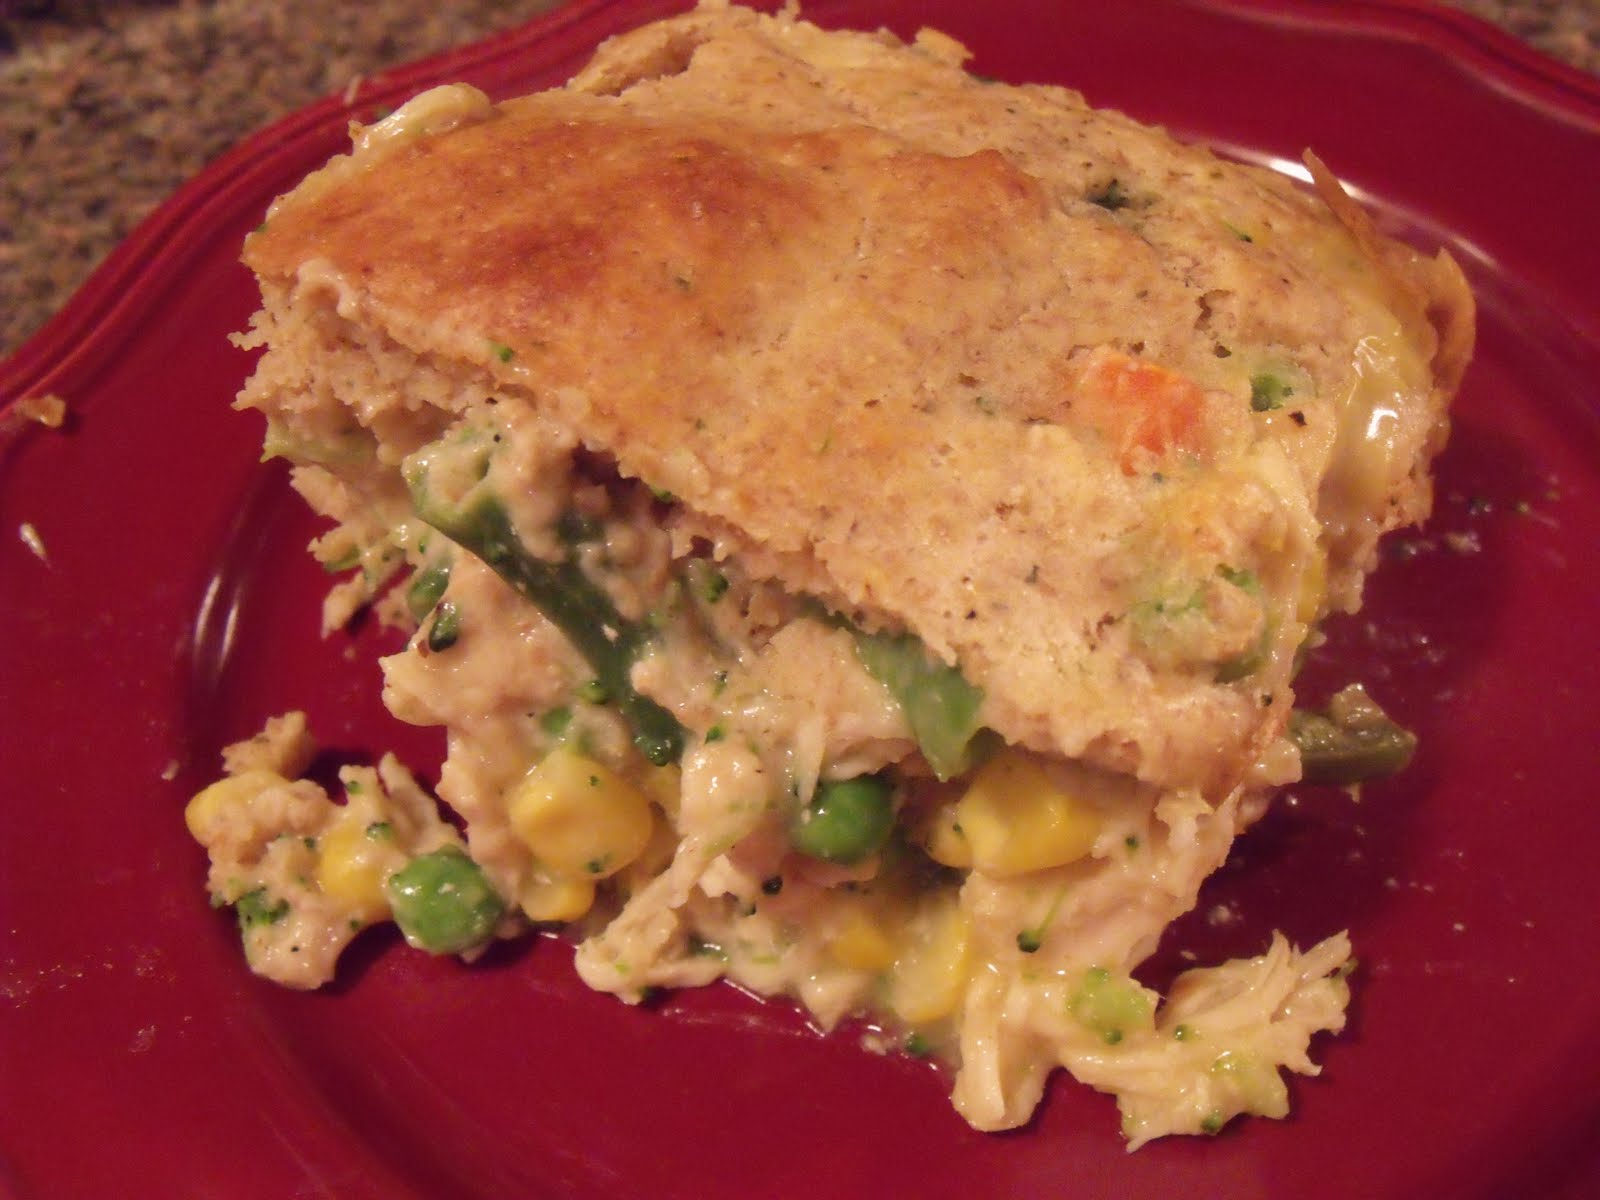 My Homemade Happiness: Recipe: Quick and Easy Chicken Pot Pie